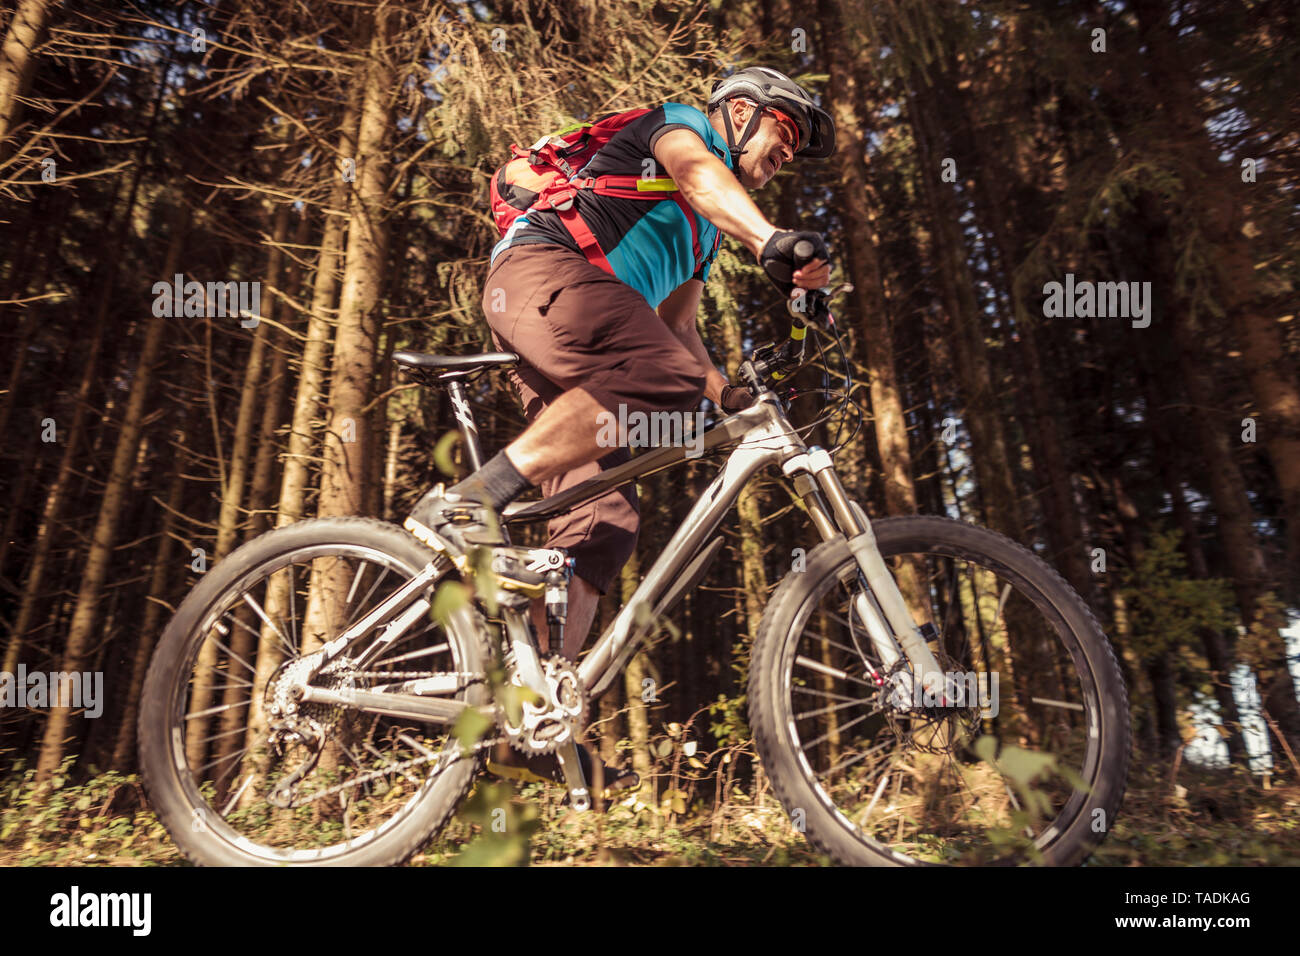 Man riding mountainbike on forest track - Stock Image